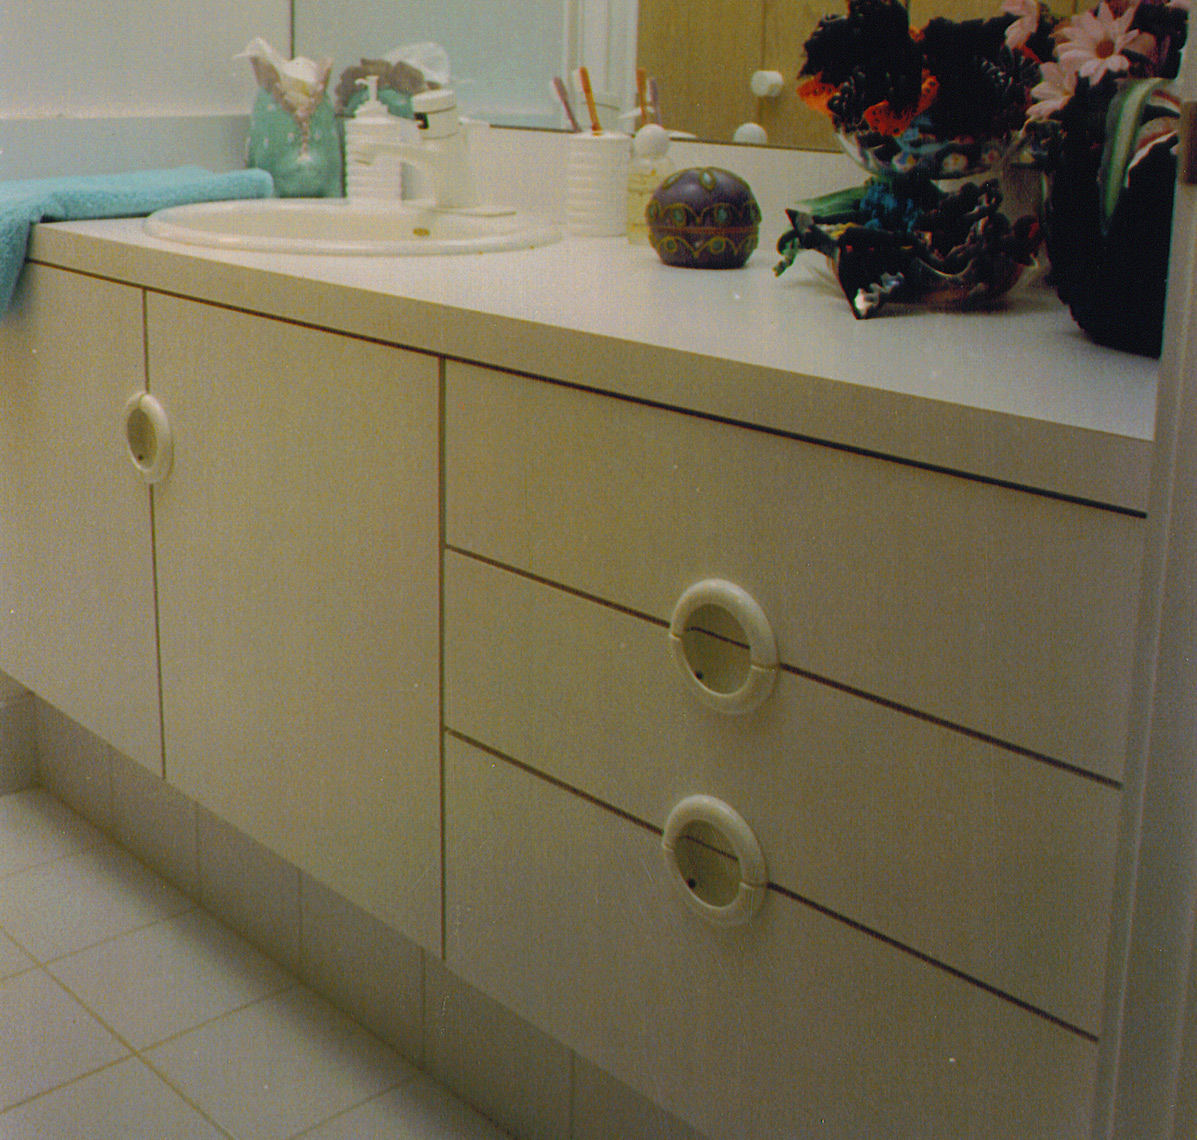 custom cabinets Morris County, NJ-Contemporay-Vanity,-Plastic-Laminate-Vanitiy